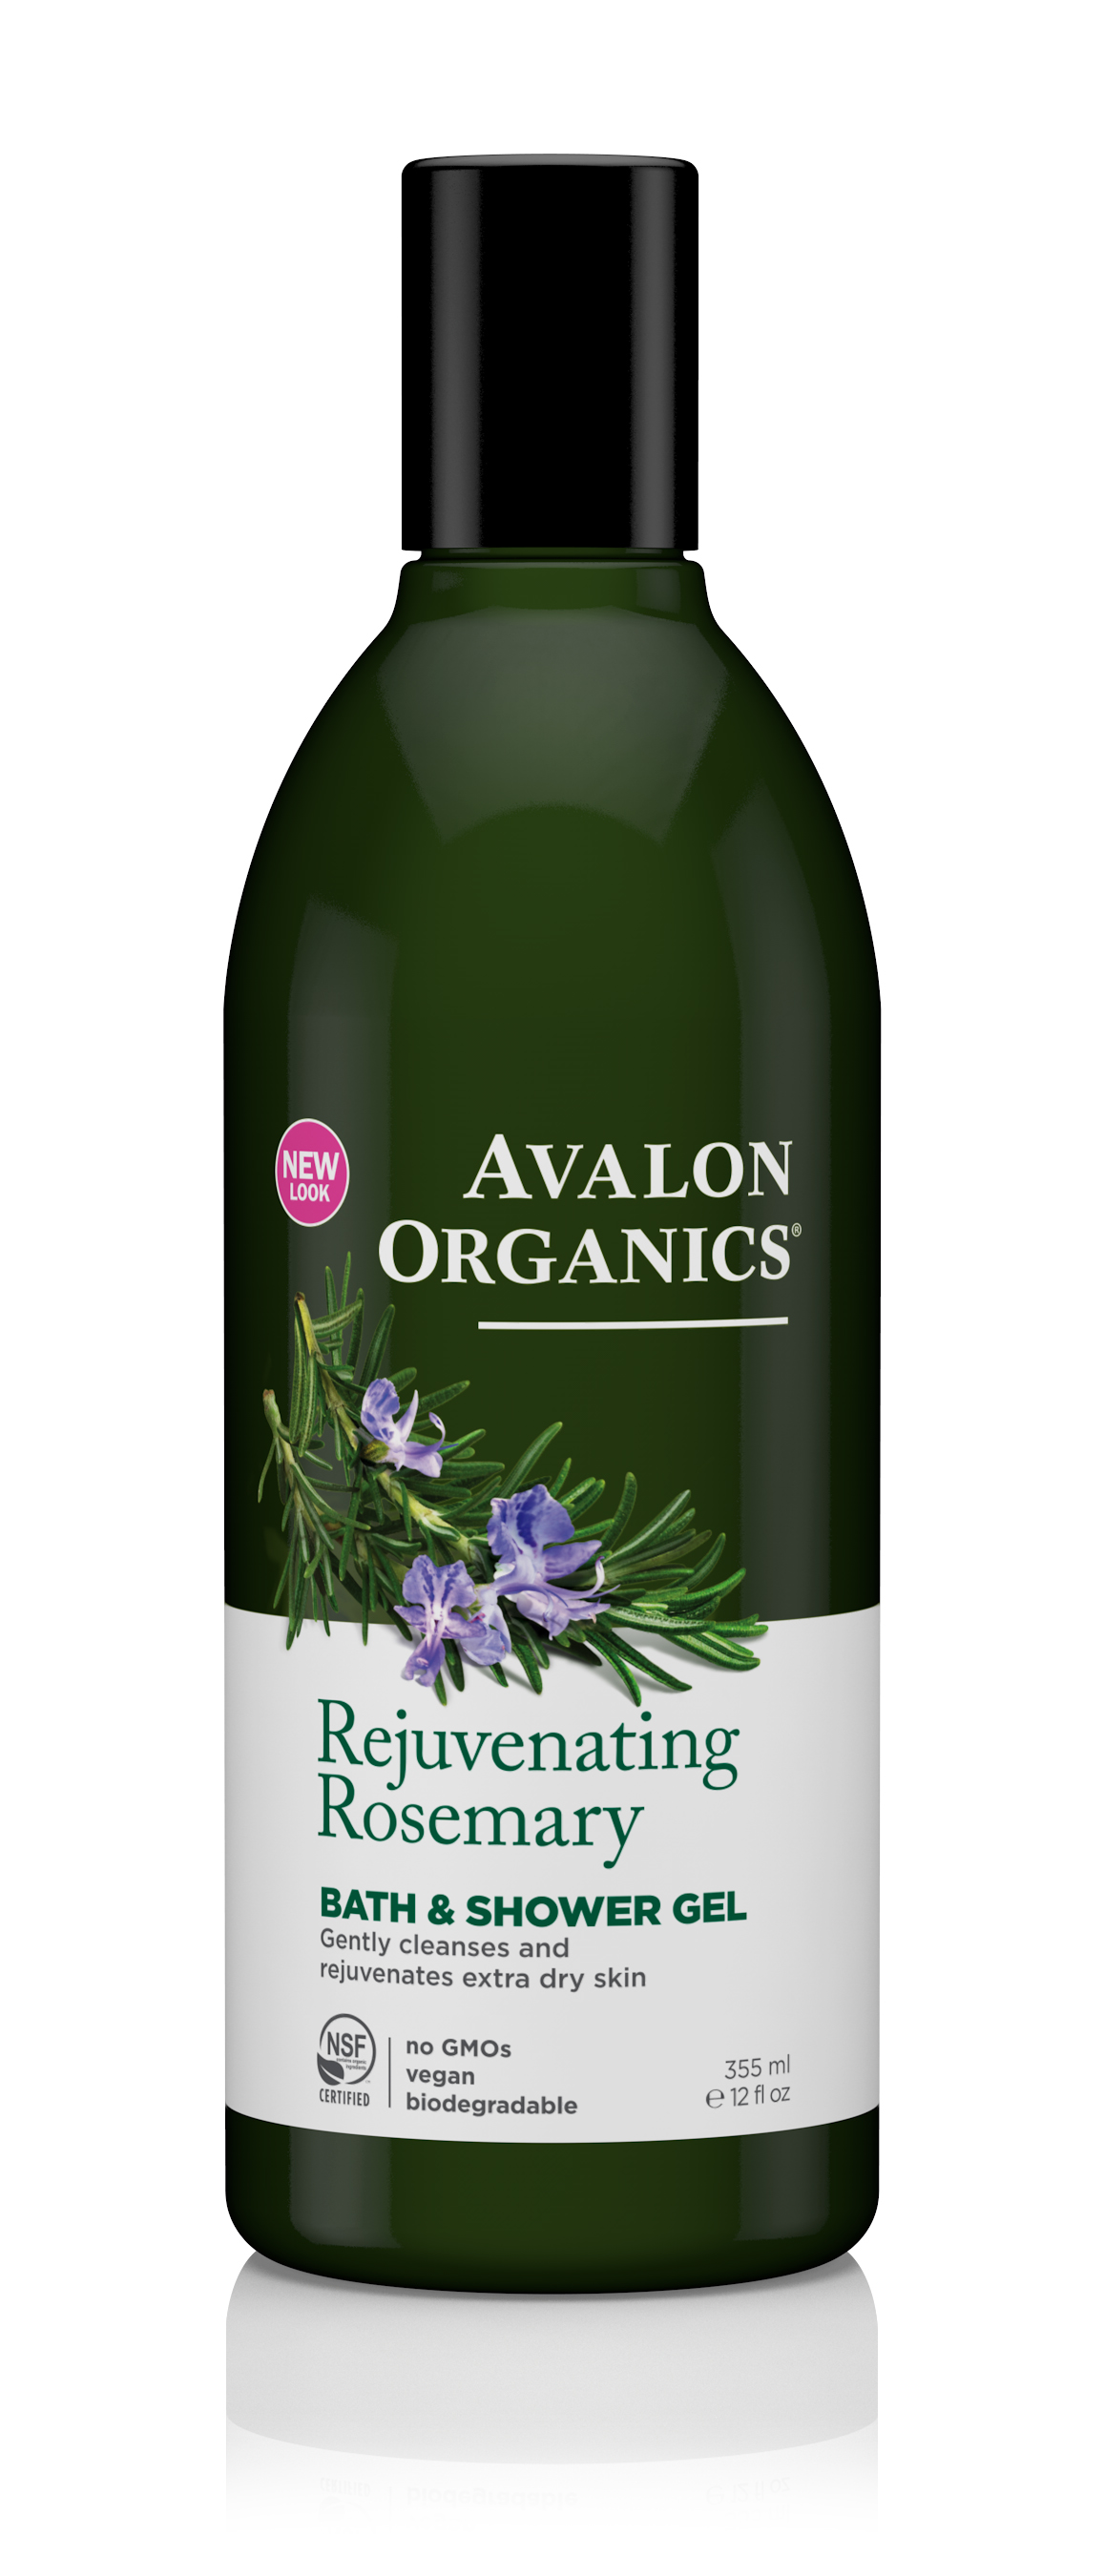 Avalon Organics Rosemary Bath & Shower Gel